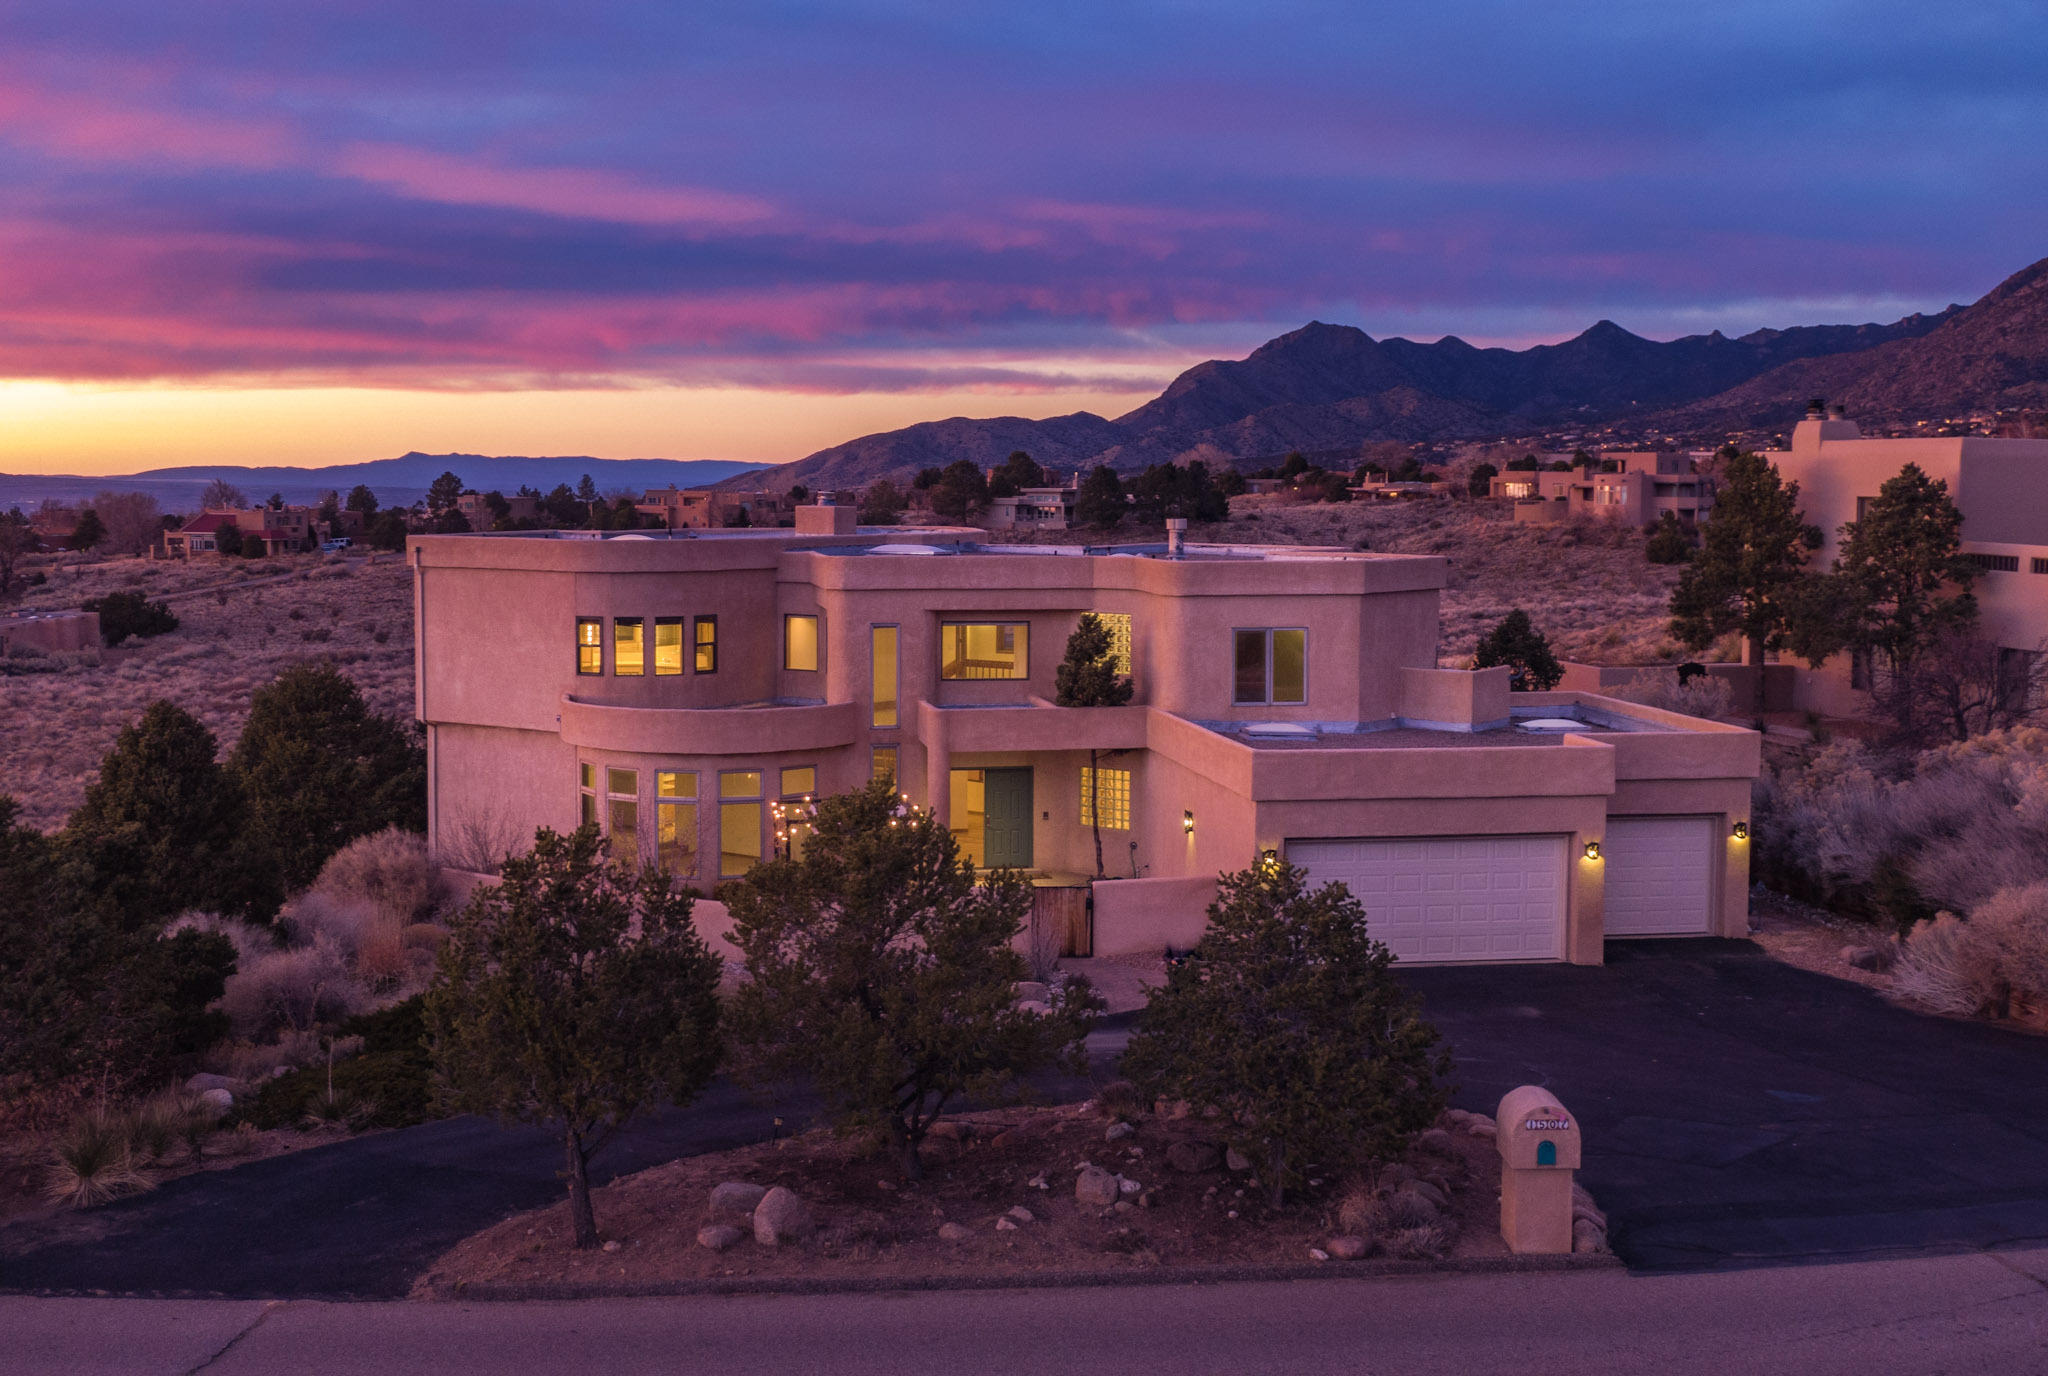 You will find incredible construction and attention to every design detail in this beautiful contemporary SW home. The idyllic 1.5 acre setting offers panoramic views of the Sandias, Arroyo, City all the way to Mt. Taylor. The interior features dramatic raised ceilings, multiple livng and dining areas and walls of windows north and south which draw in the mountains and tons of natural light. Professional landscaping front/back with multiple patios and an elevated deck to take in all of the views and nautral surroundings.  The master bedroom is a retreat with view deck, office area, view windows and a spa like bathroom. The chef's kitchen is a fantastic gathering/entertaining space with large pantry and breakfast bar. This home is truly one of the most unique properties in Sandia Heights.